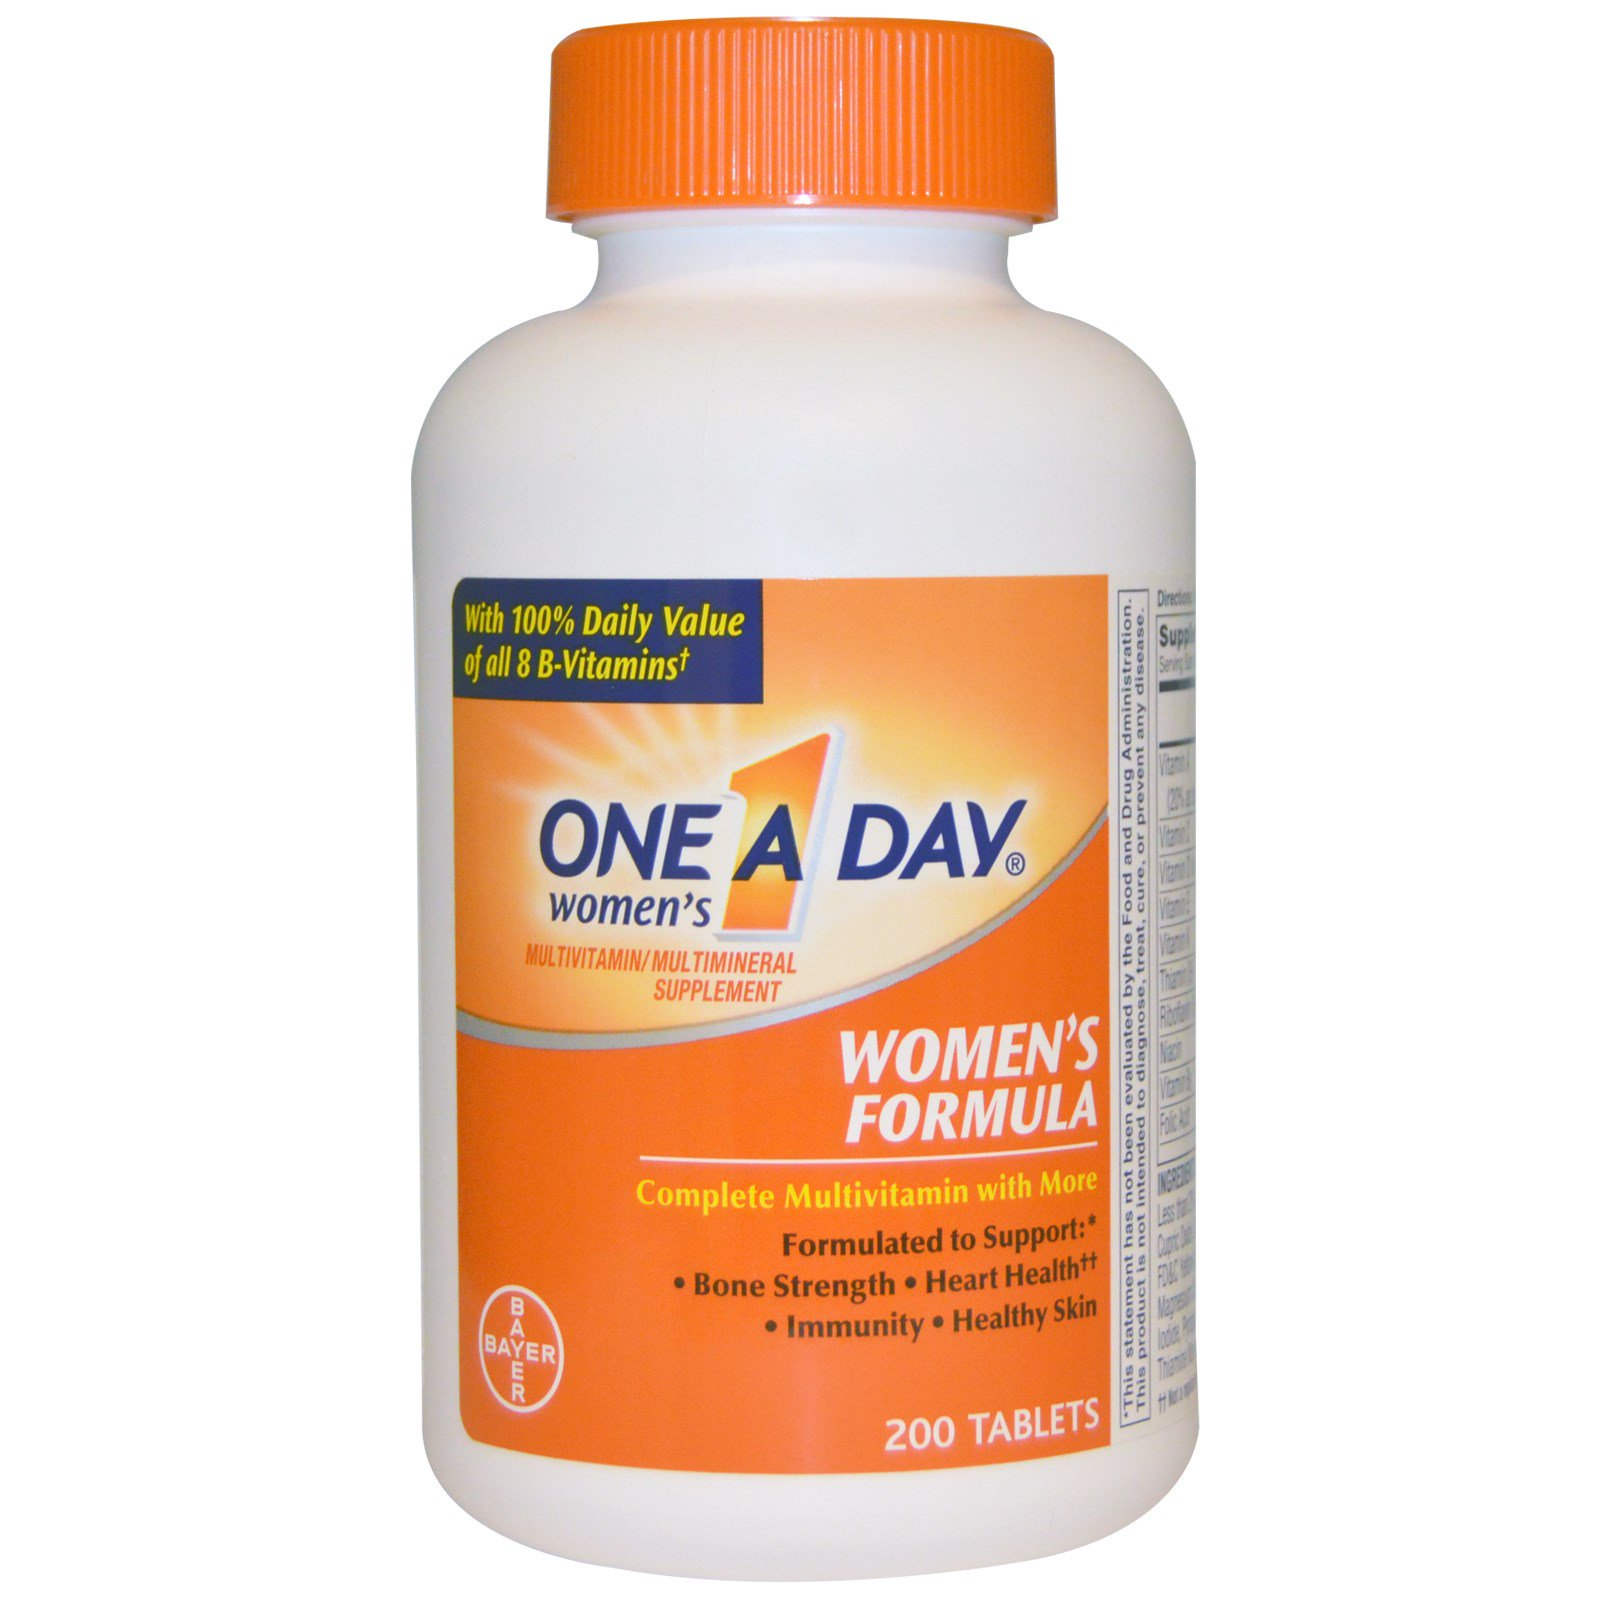 Women to women vitamins